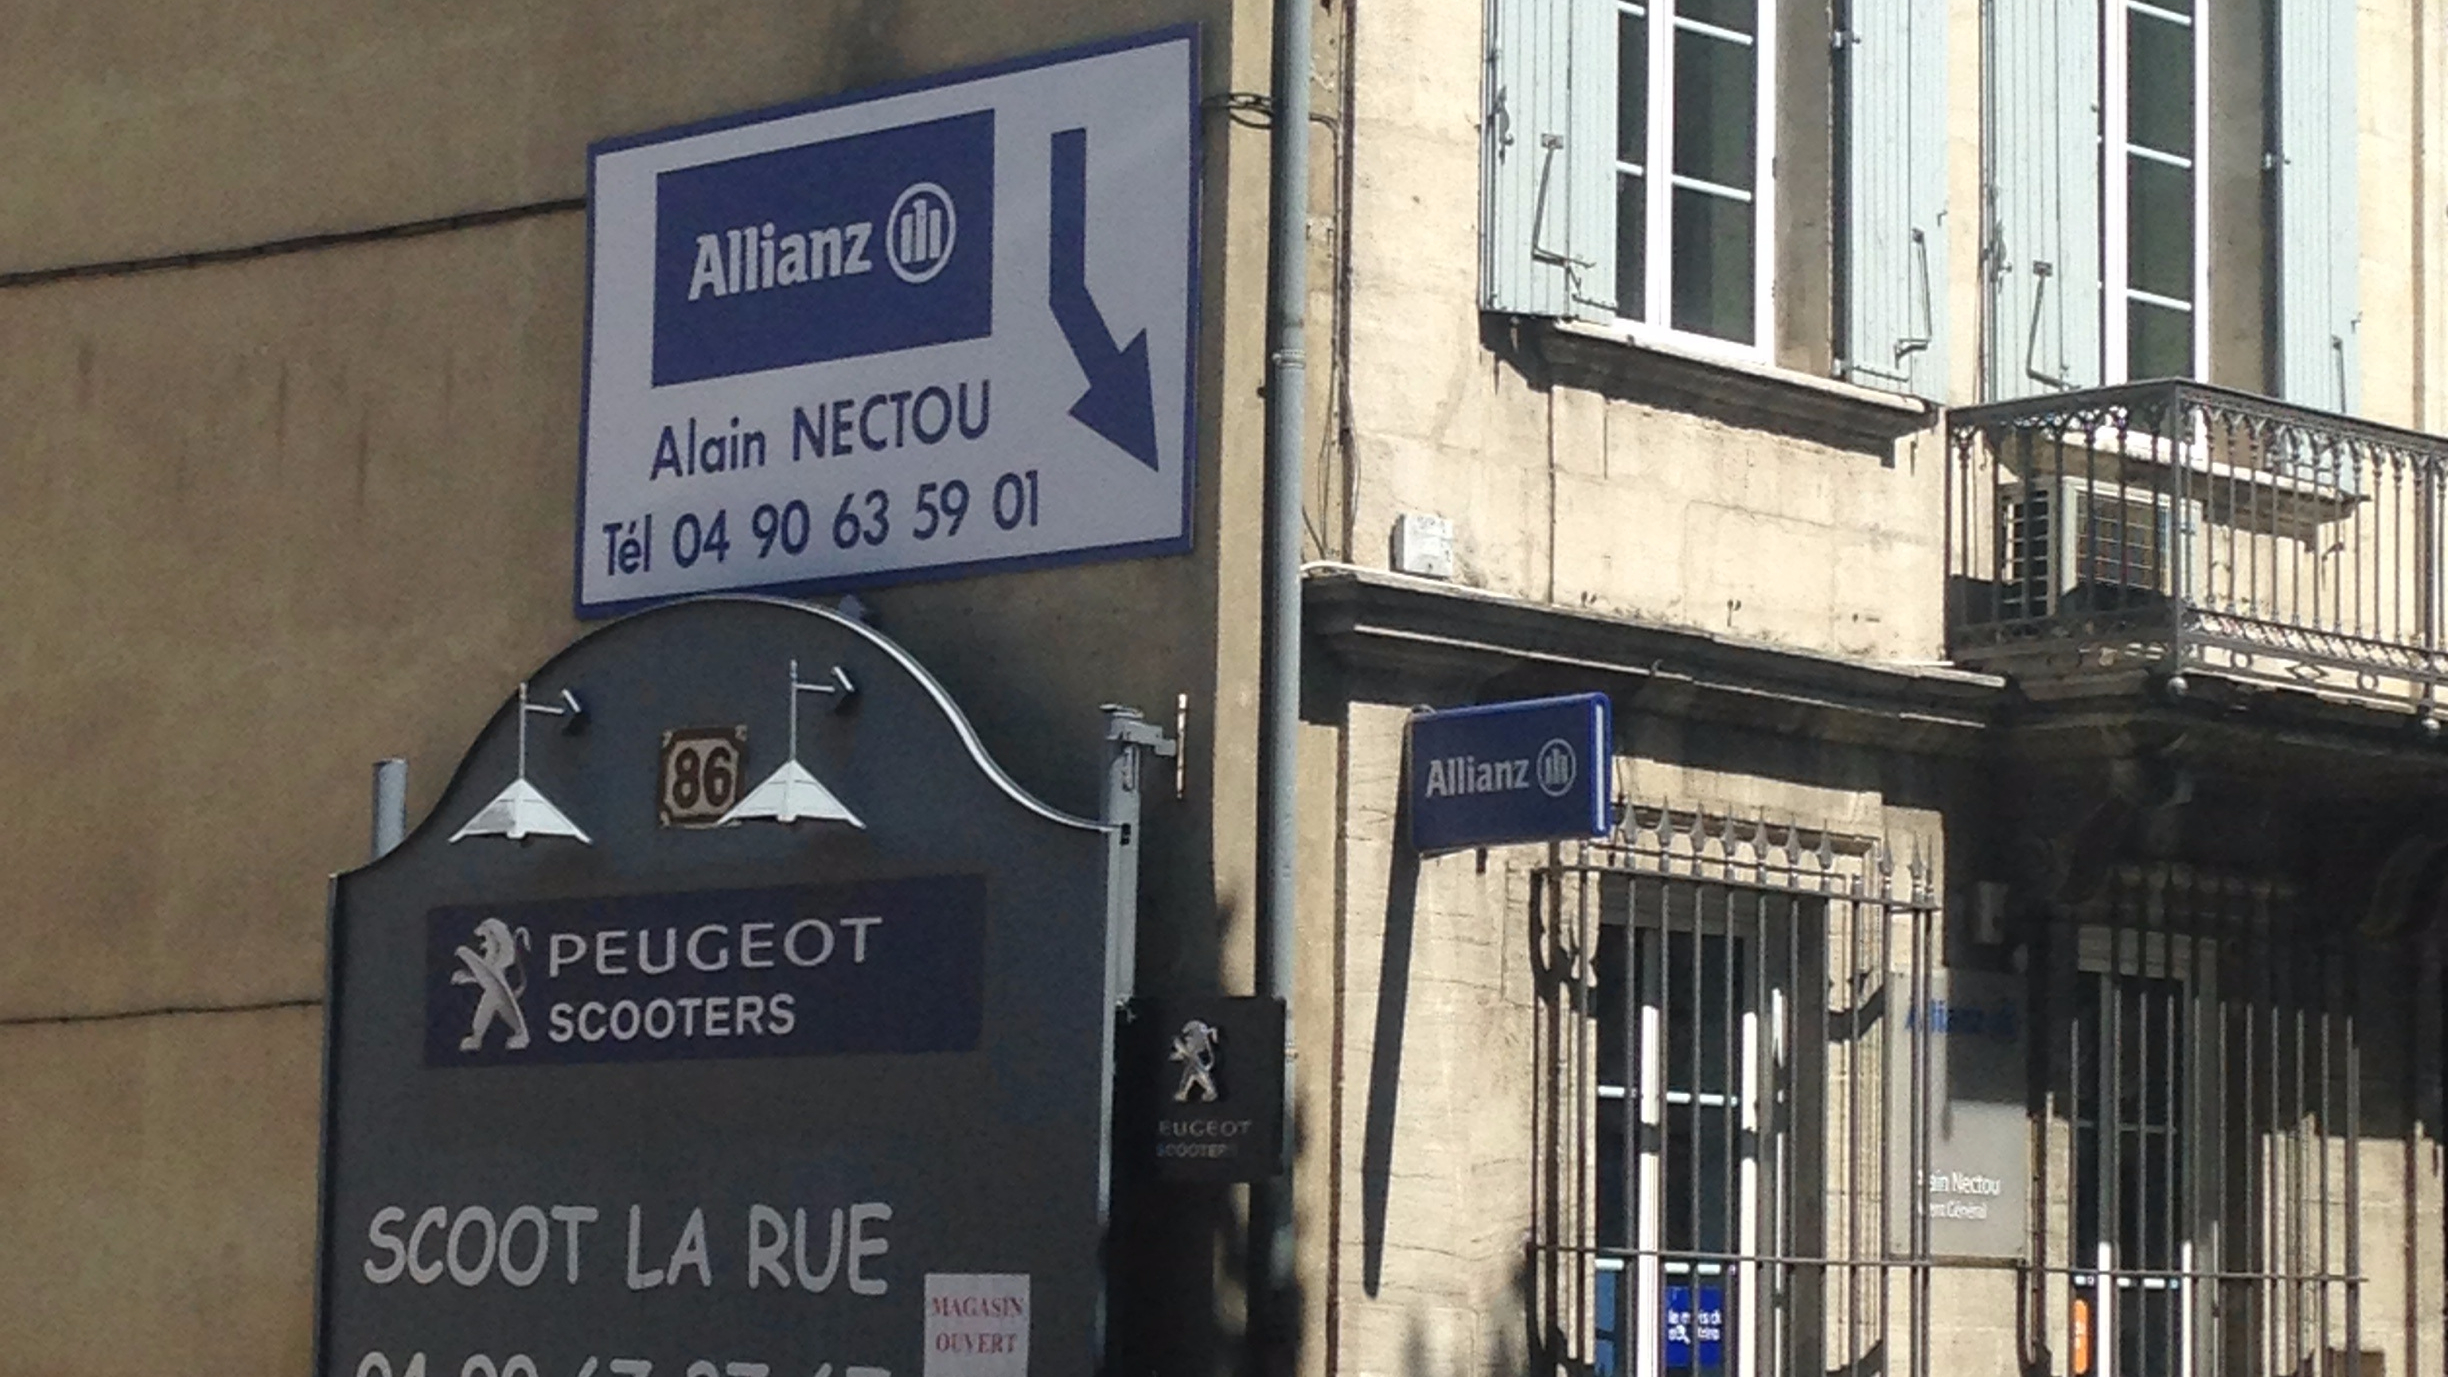 Allianz Carpentras jaures - Alain NECTOU